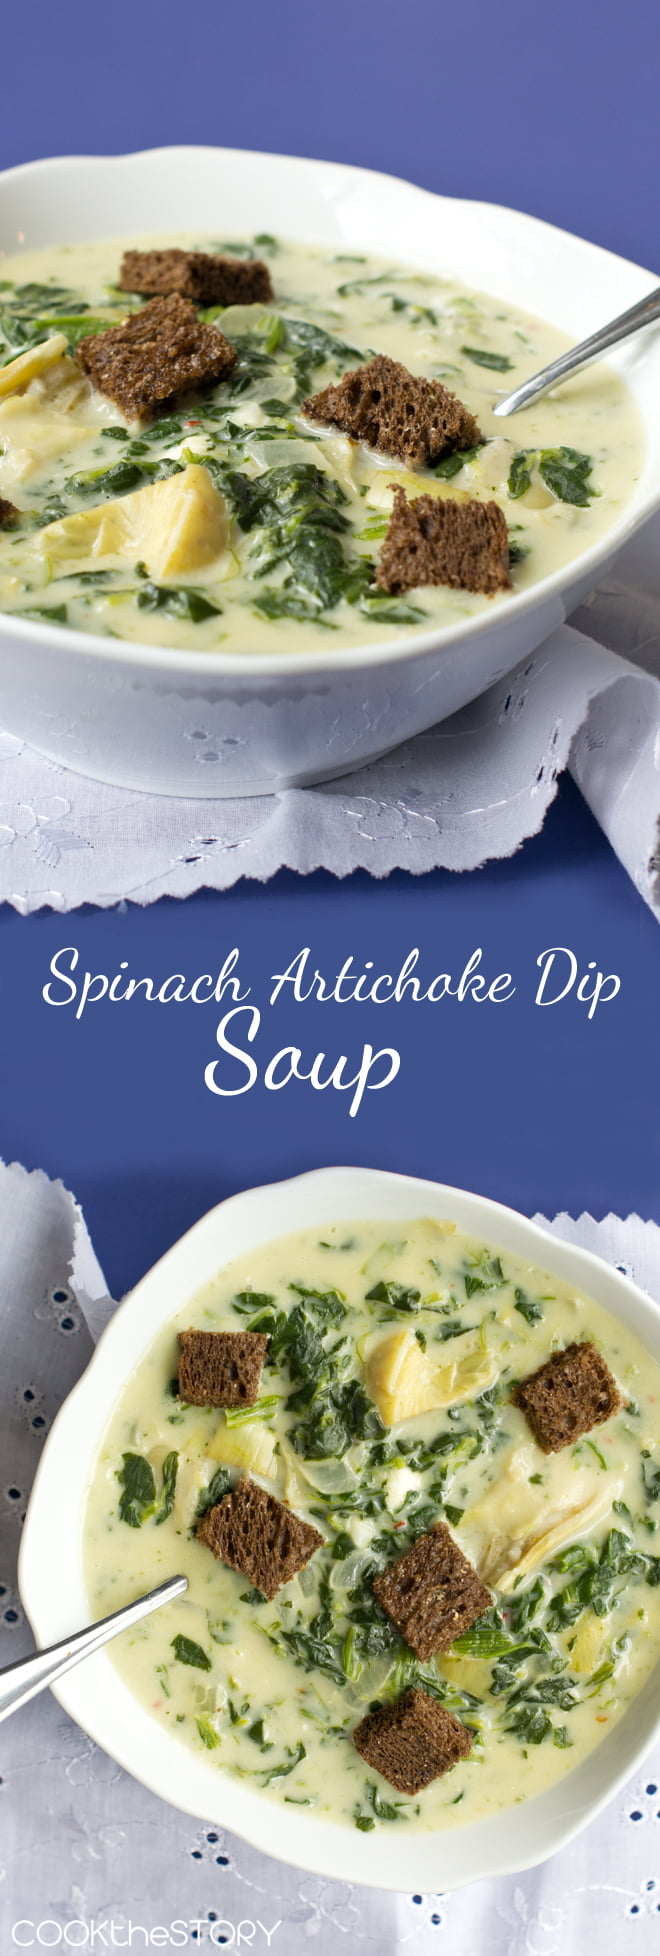 Spinach and Artichoke Dip Soup